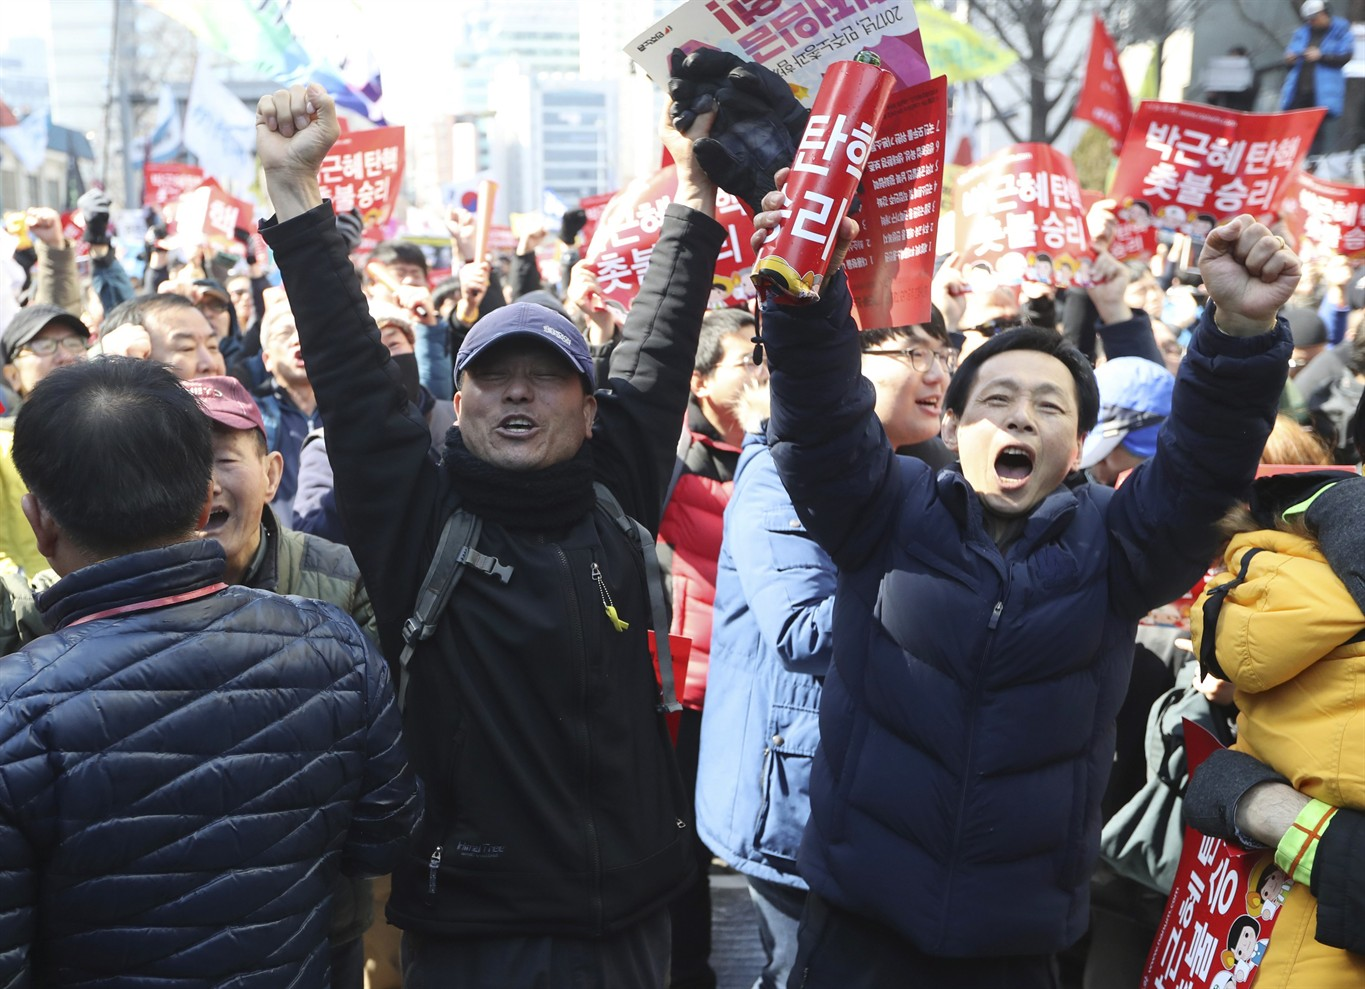 South Korea's president formally ousted by court - NEWS 1130